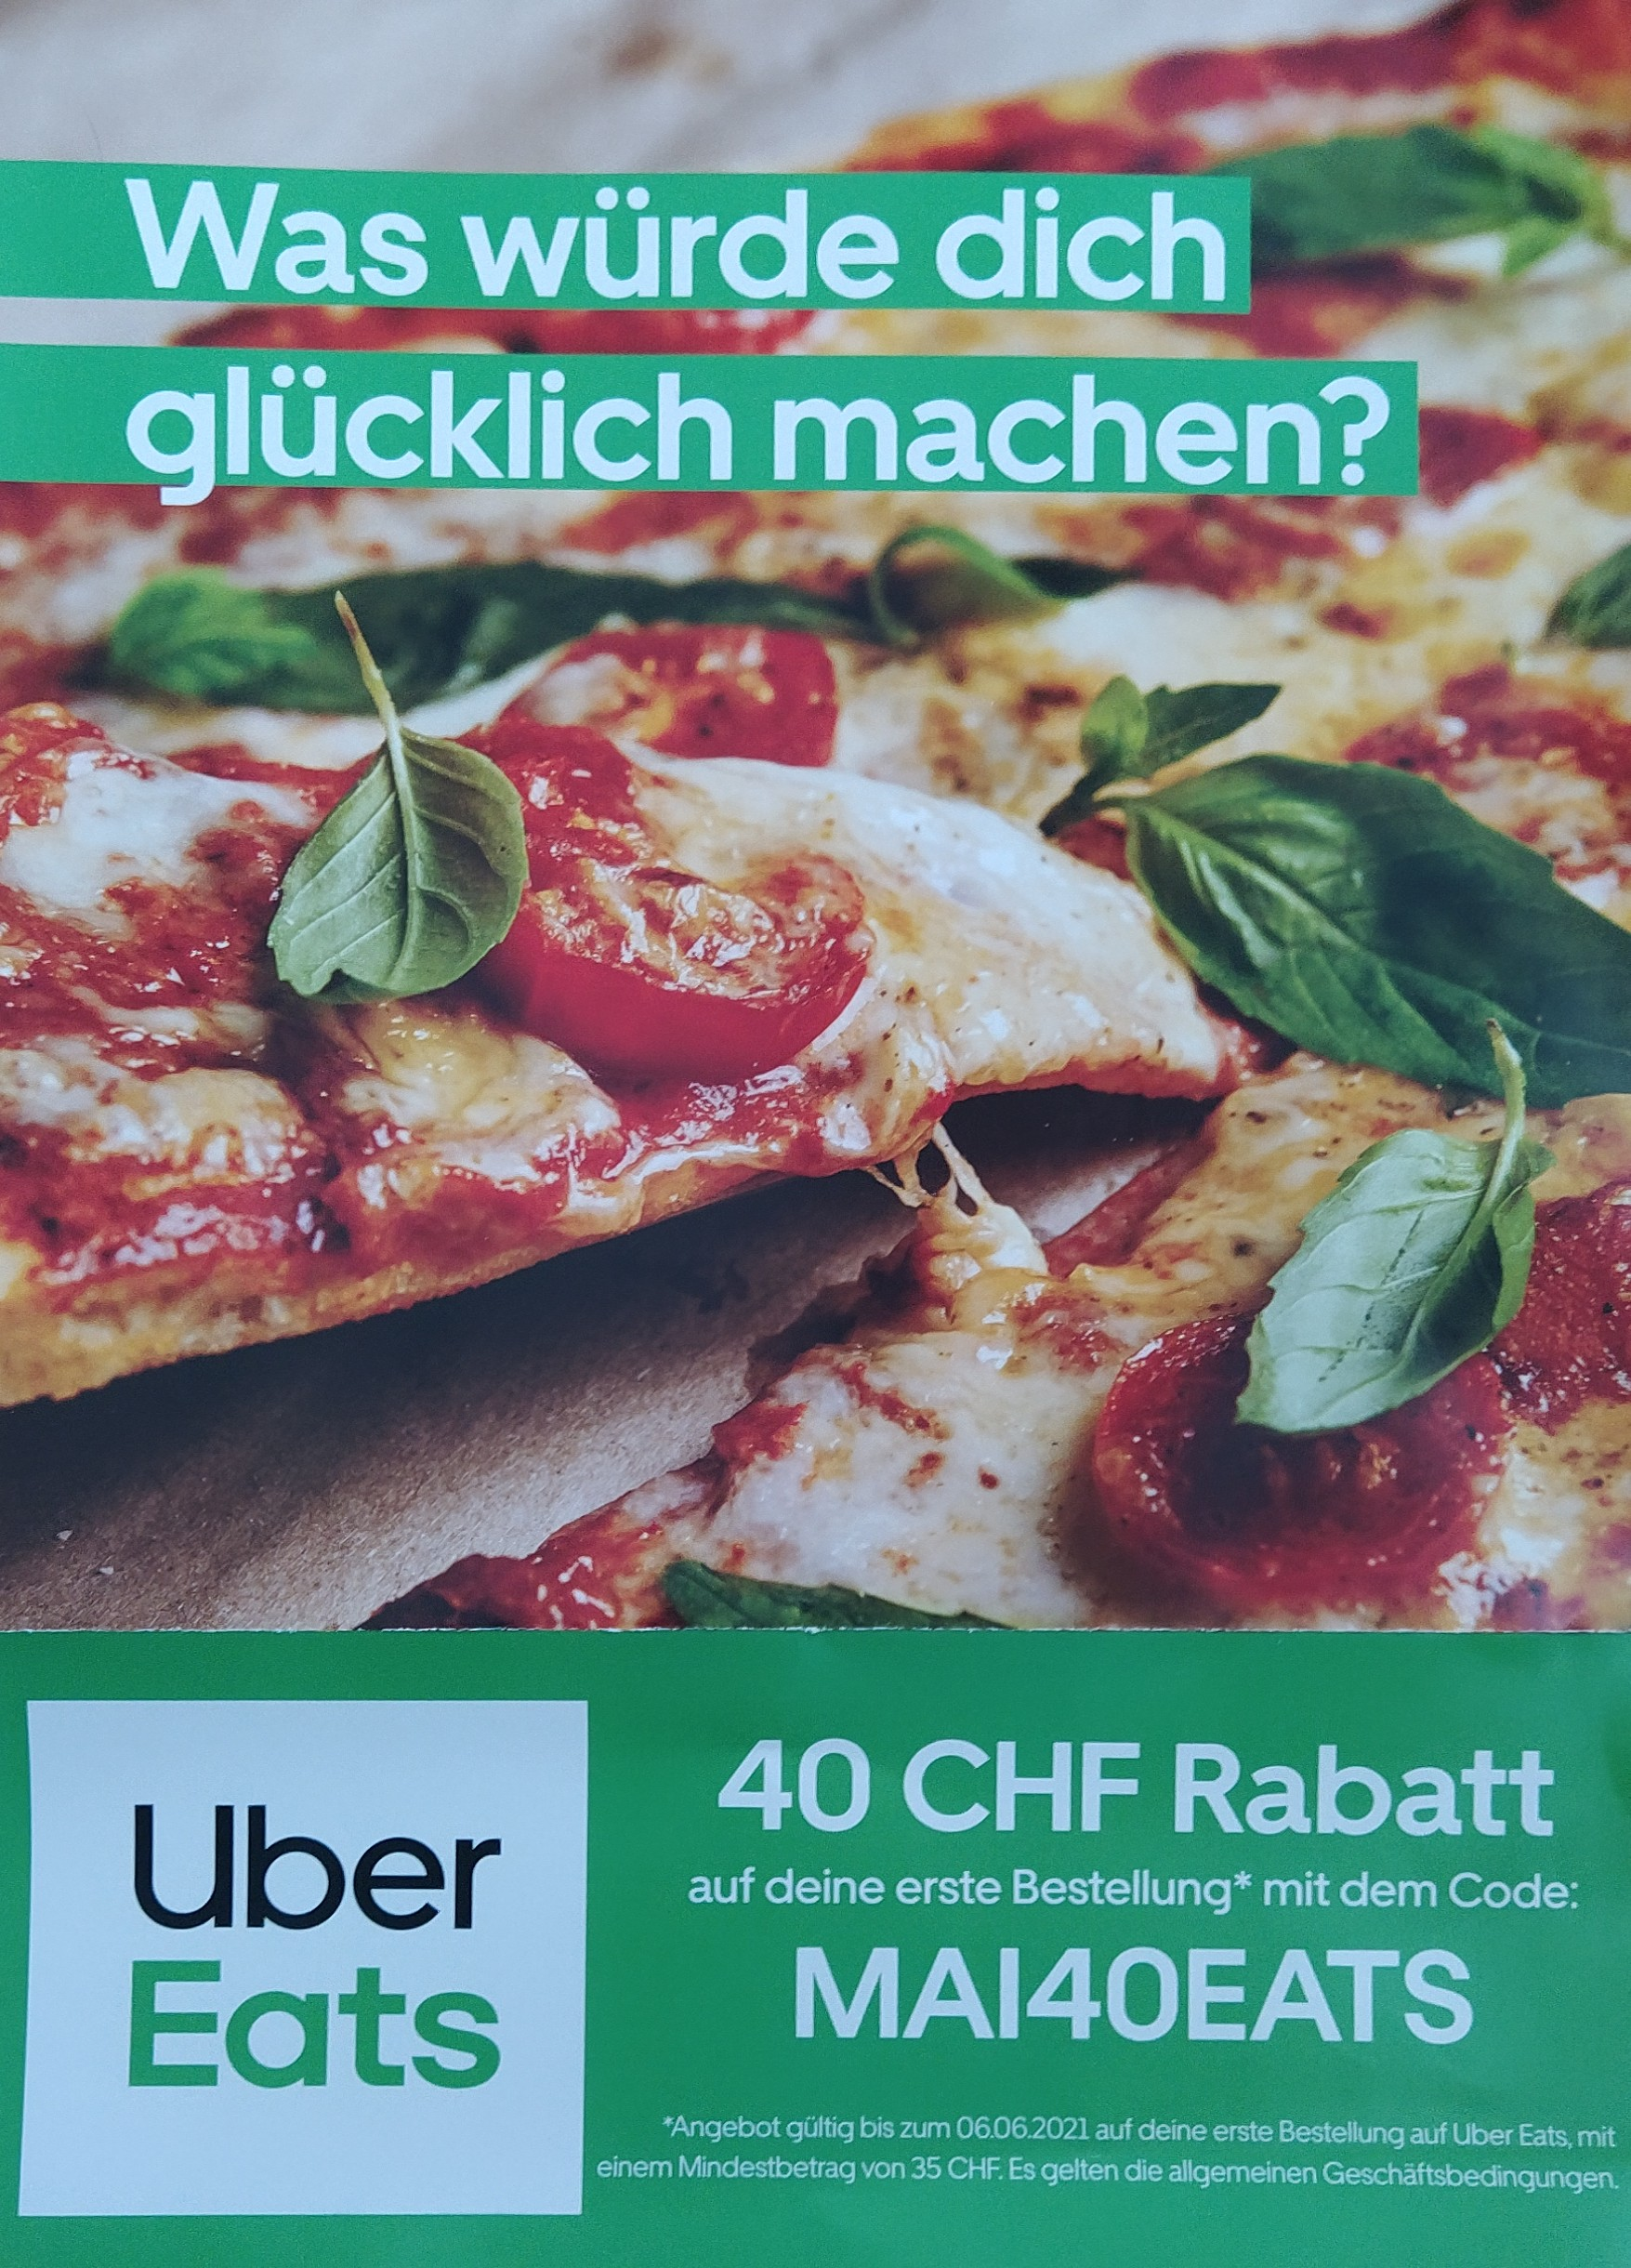 Johanniter delivery in Zürich | Takeout menu | Uber Eats